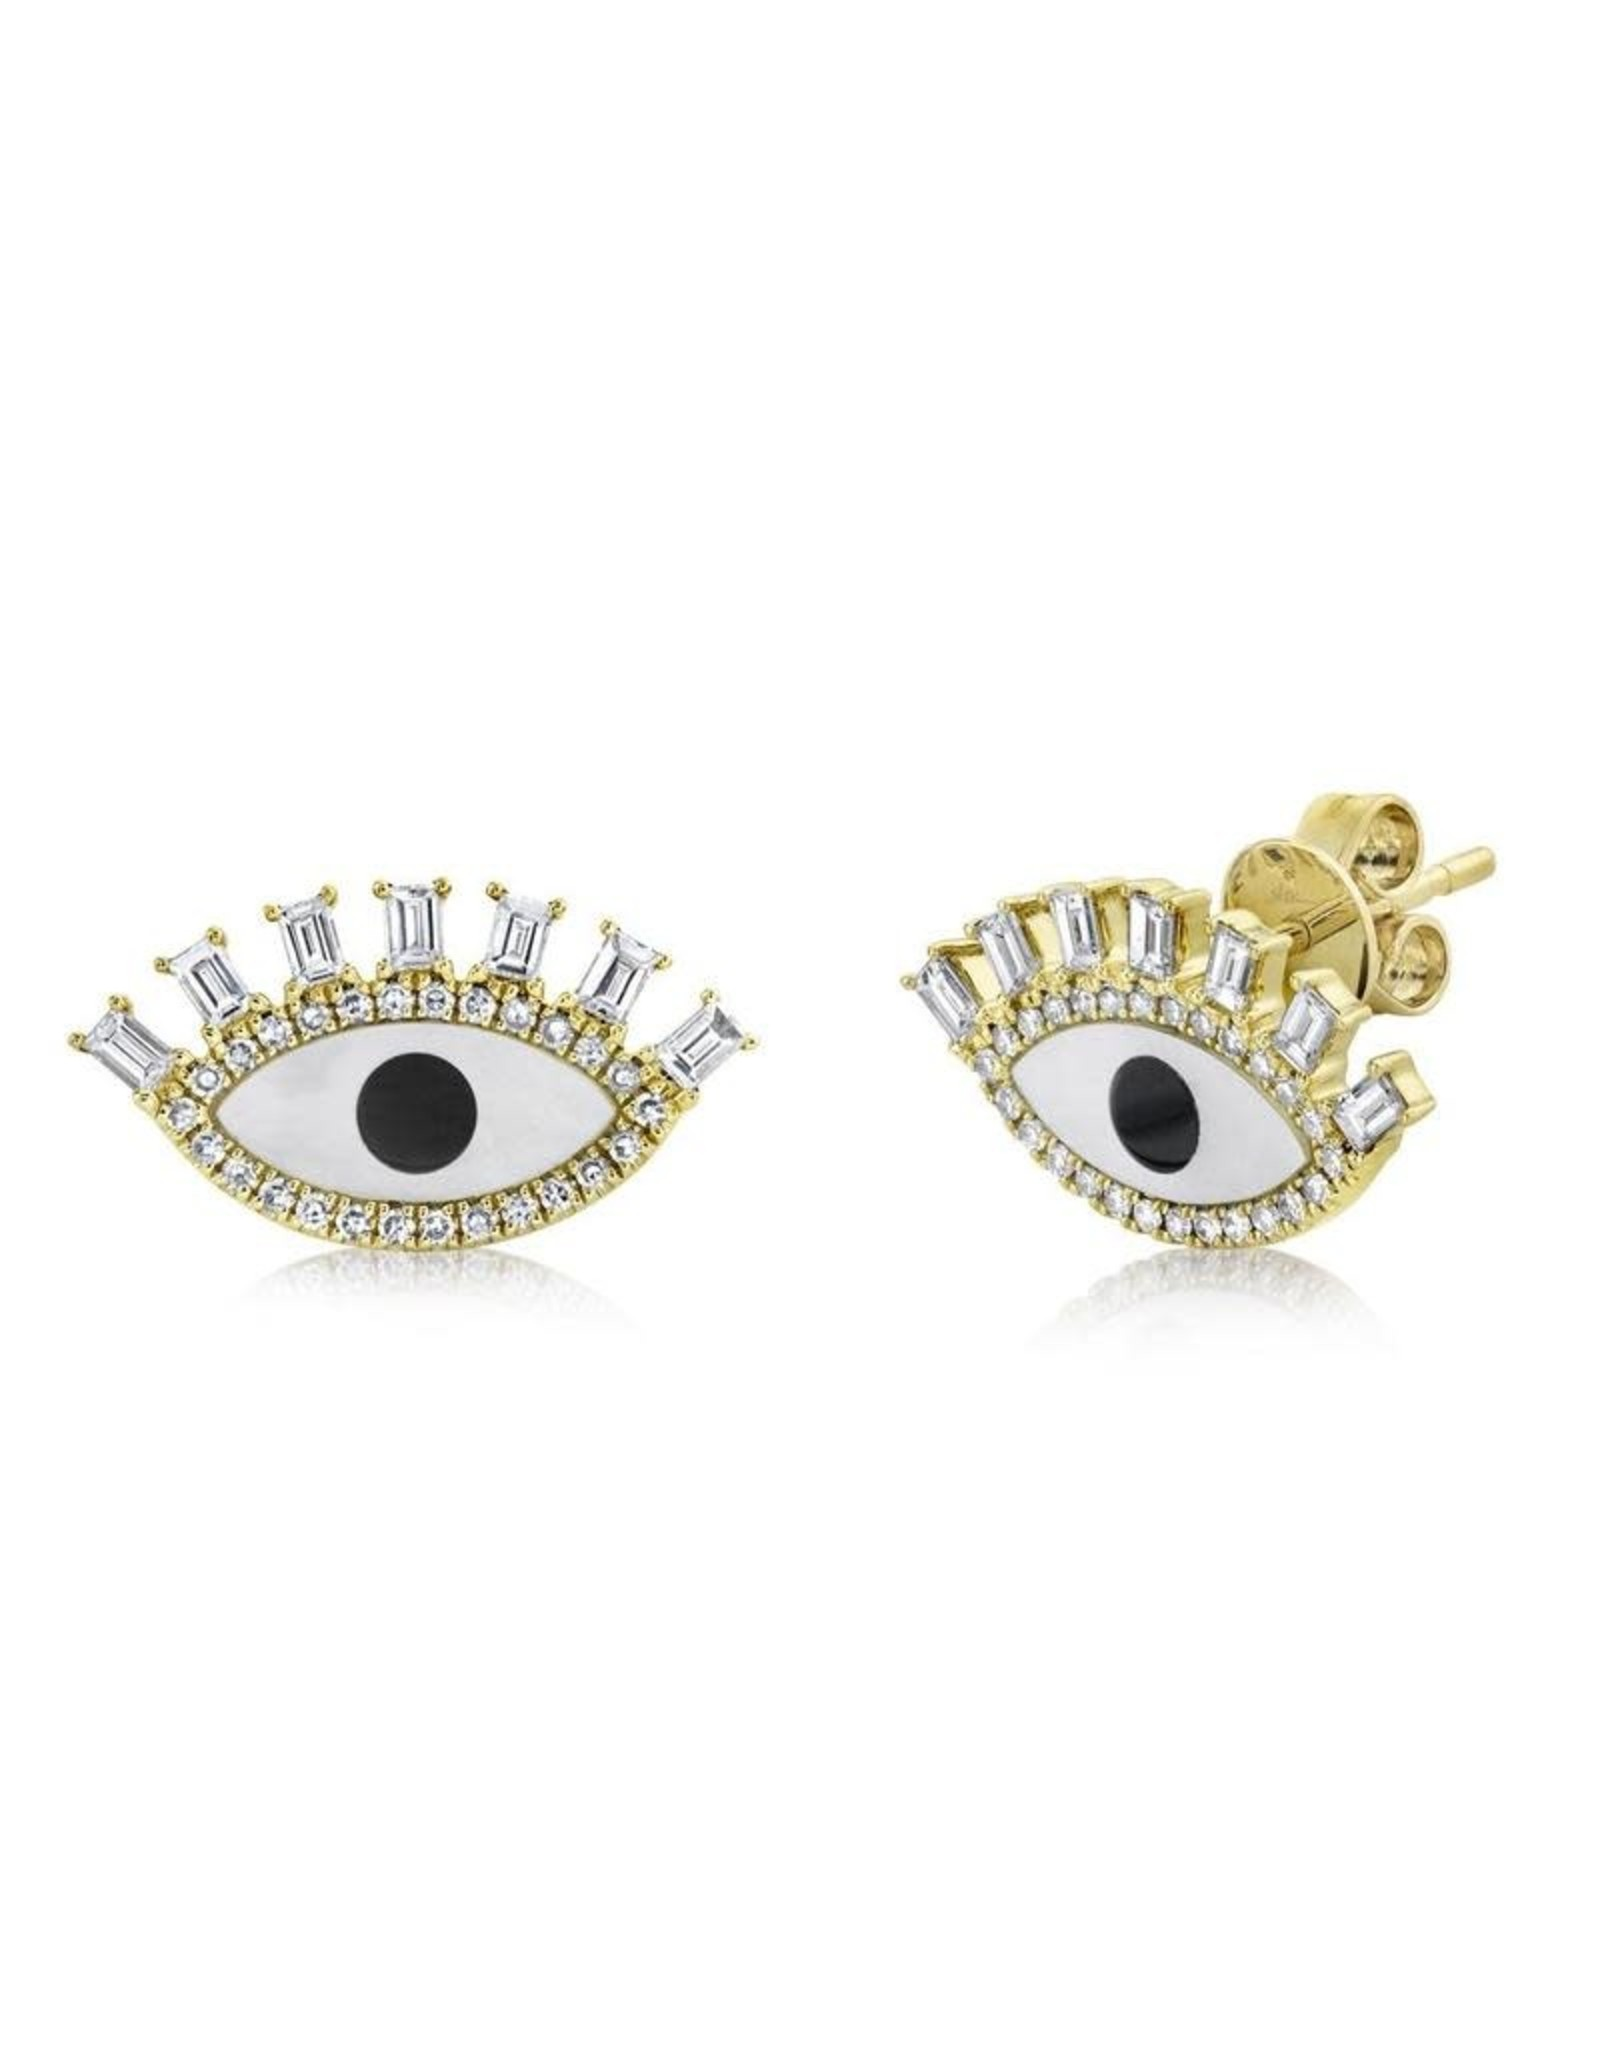 14K Yellow Gold Evil Eye Diamond, Onyx & Mother of Pearl Studs, D: 0.48ct, OX: 0.89ct